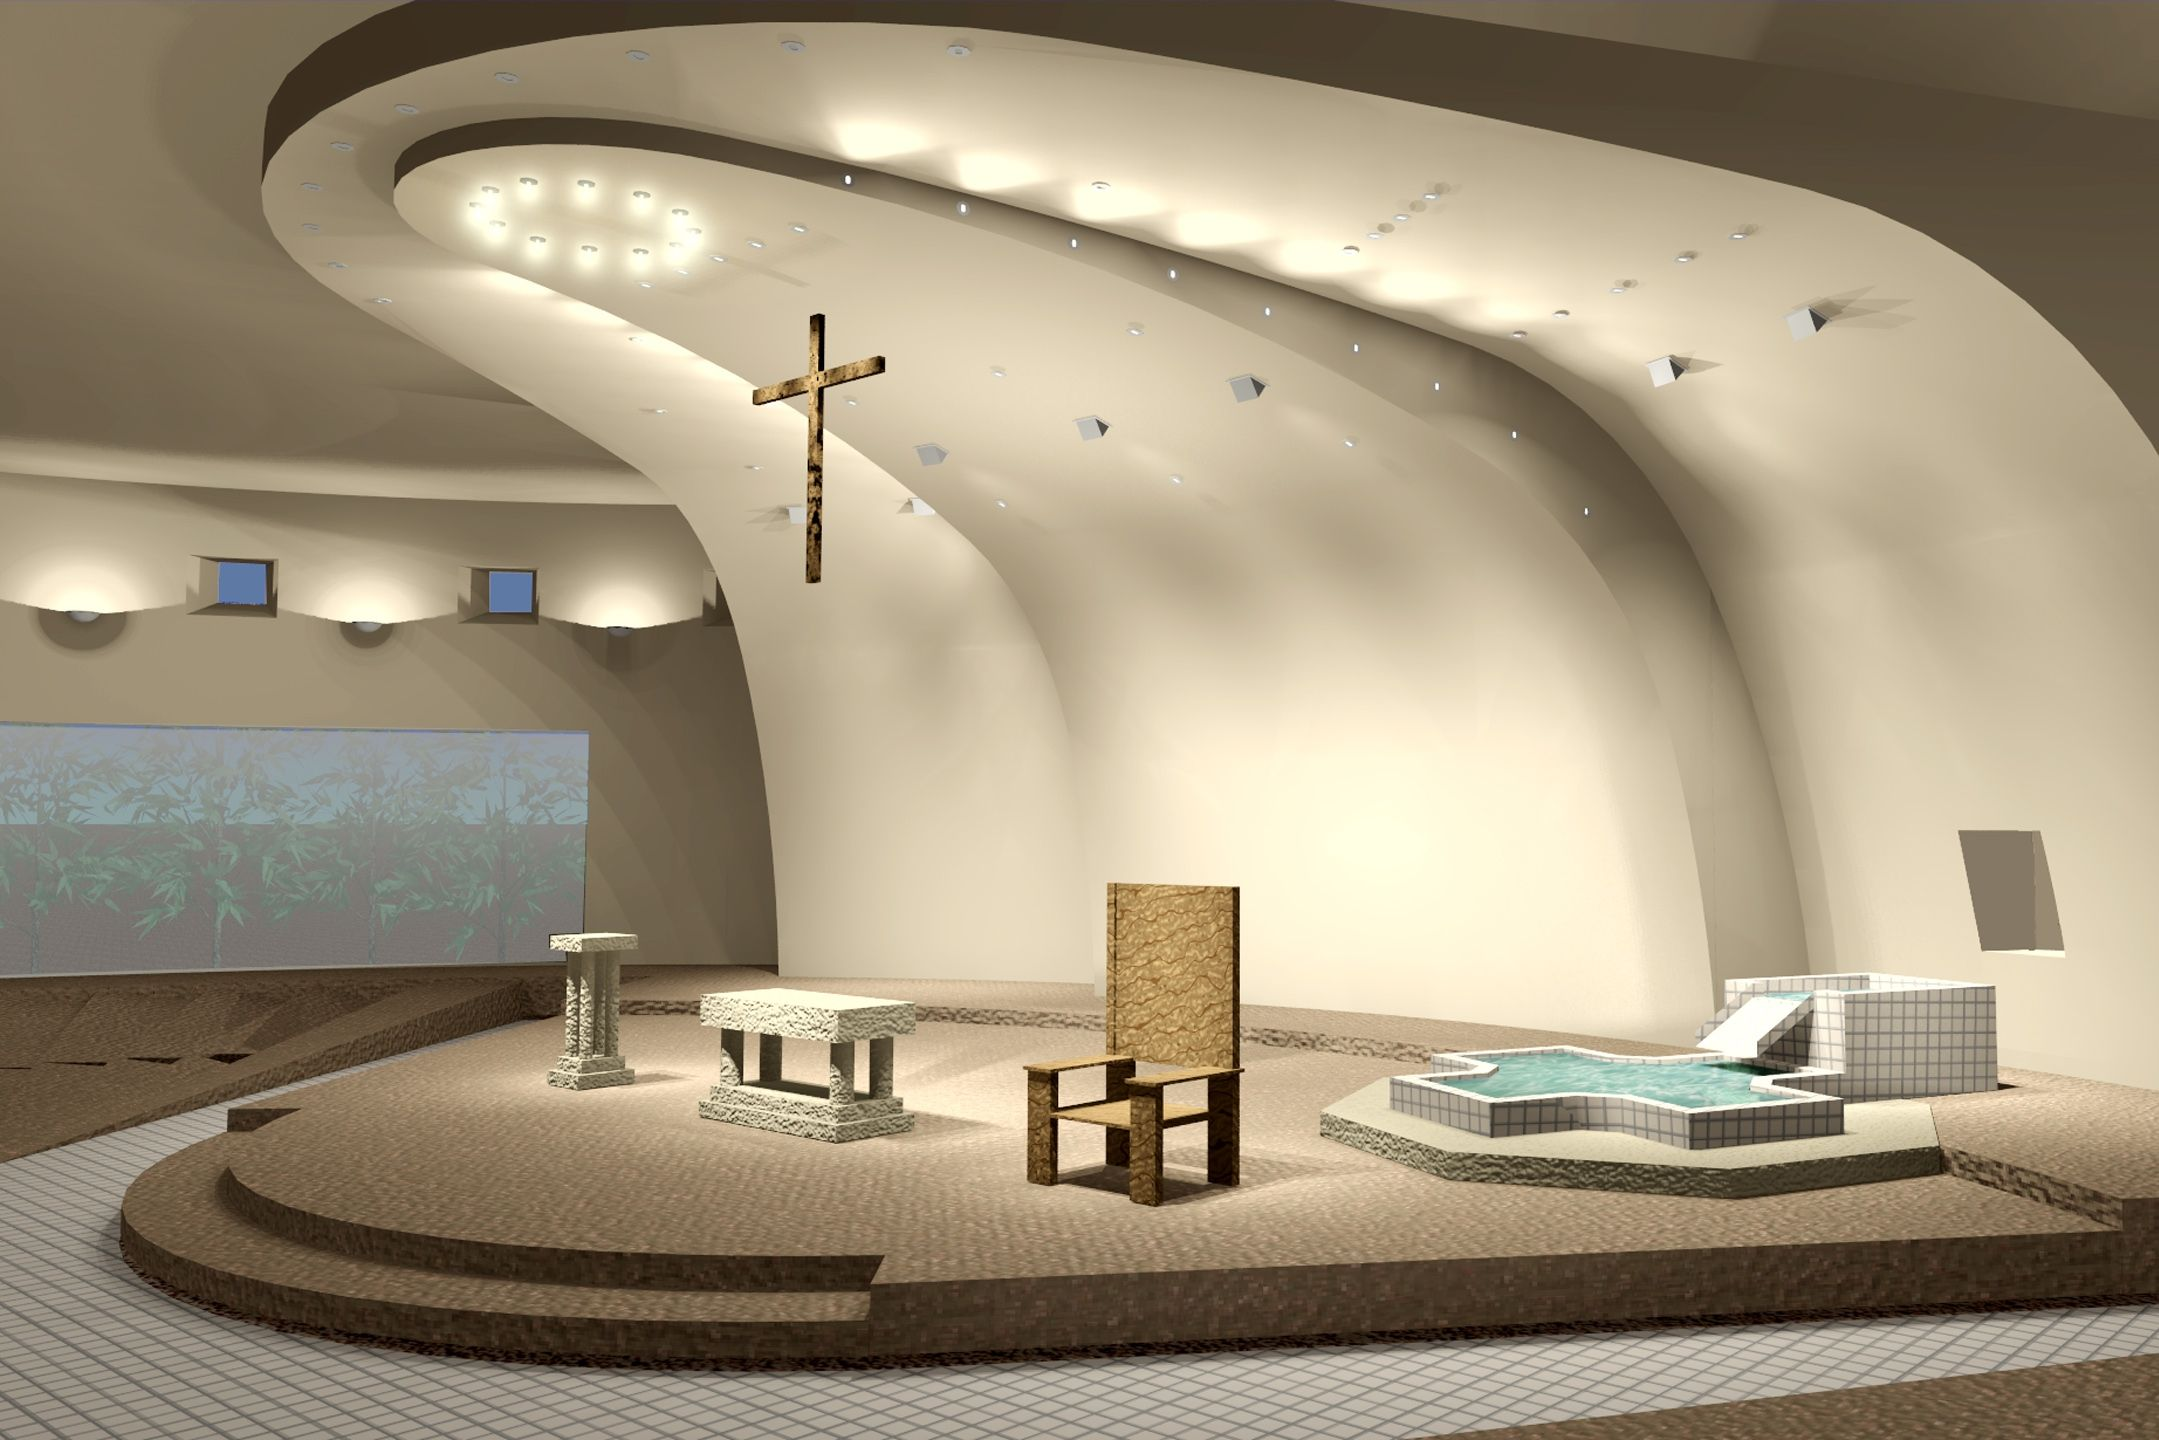 Church Interior Design Ideas excellent modern church interior design also 25 modern architectural designs from around the world from up Cute Modern Church Interior Design Along With Hardwoord Amp Tile